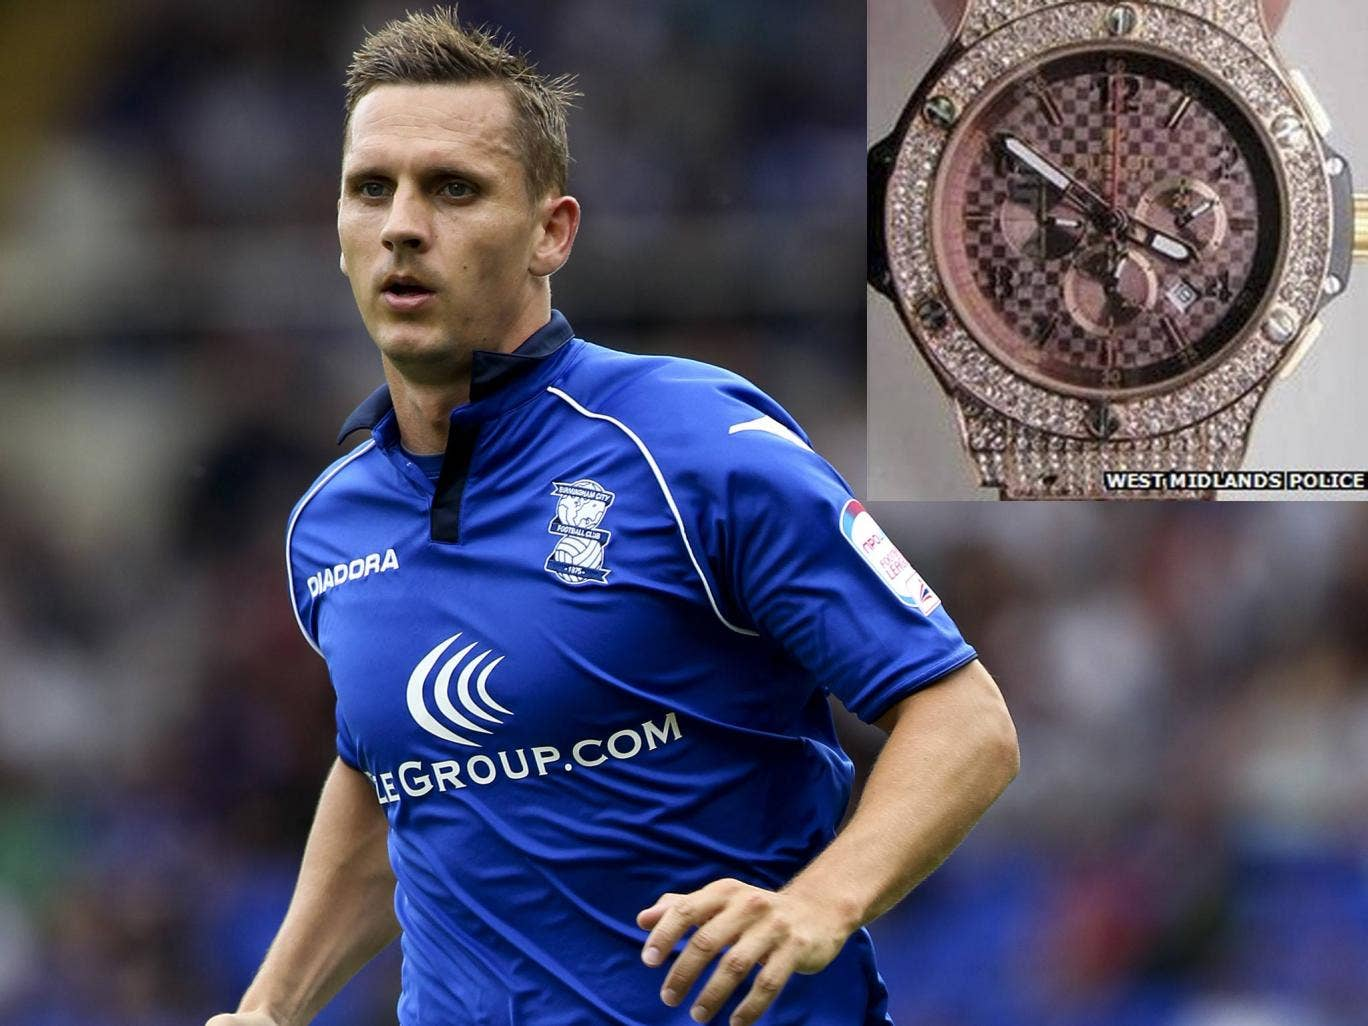 Peter Lovenkrands, plus inset, an image released by West Midlands police of a similar diamond-encrusted Hublot watch